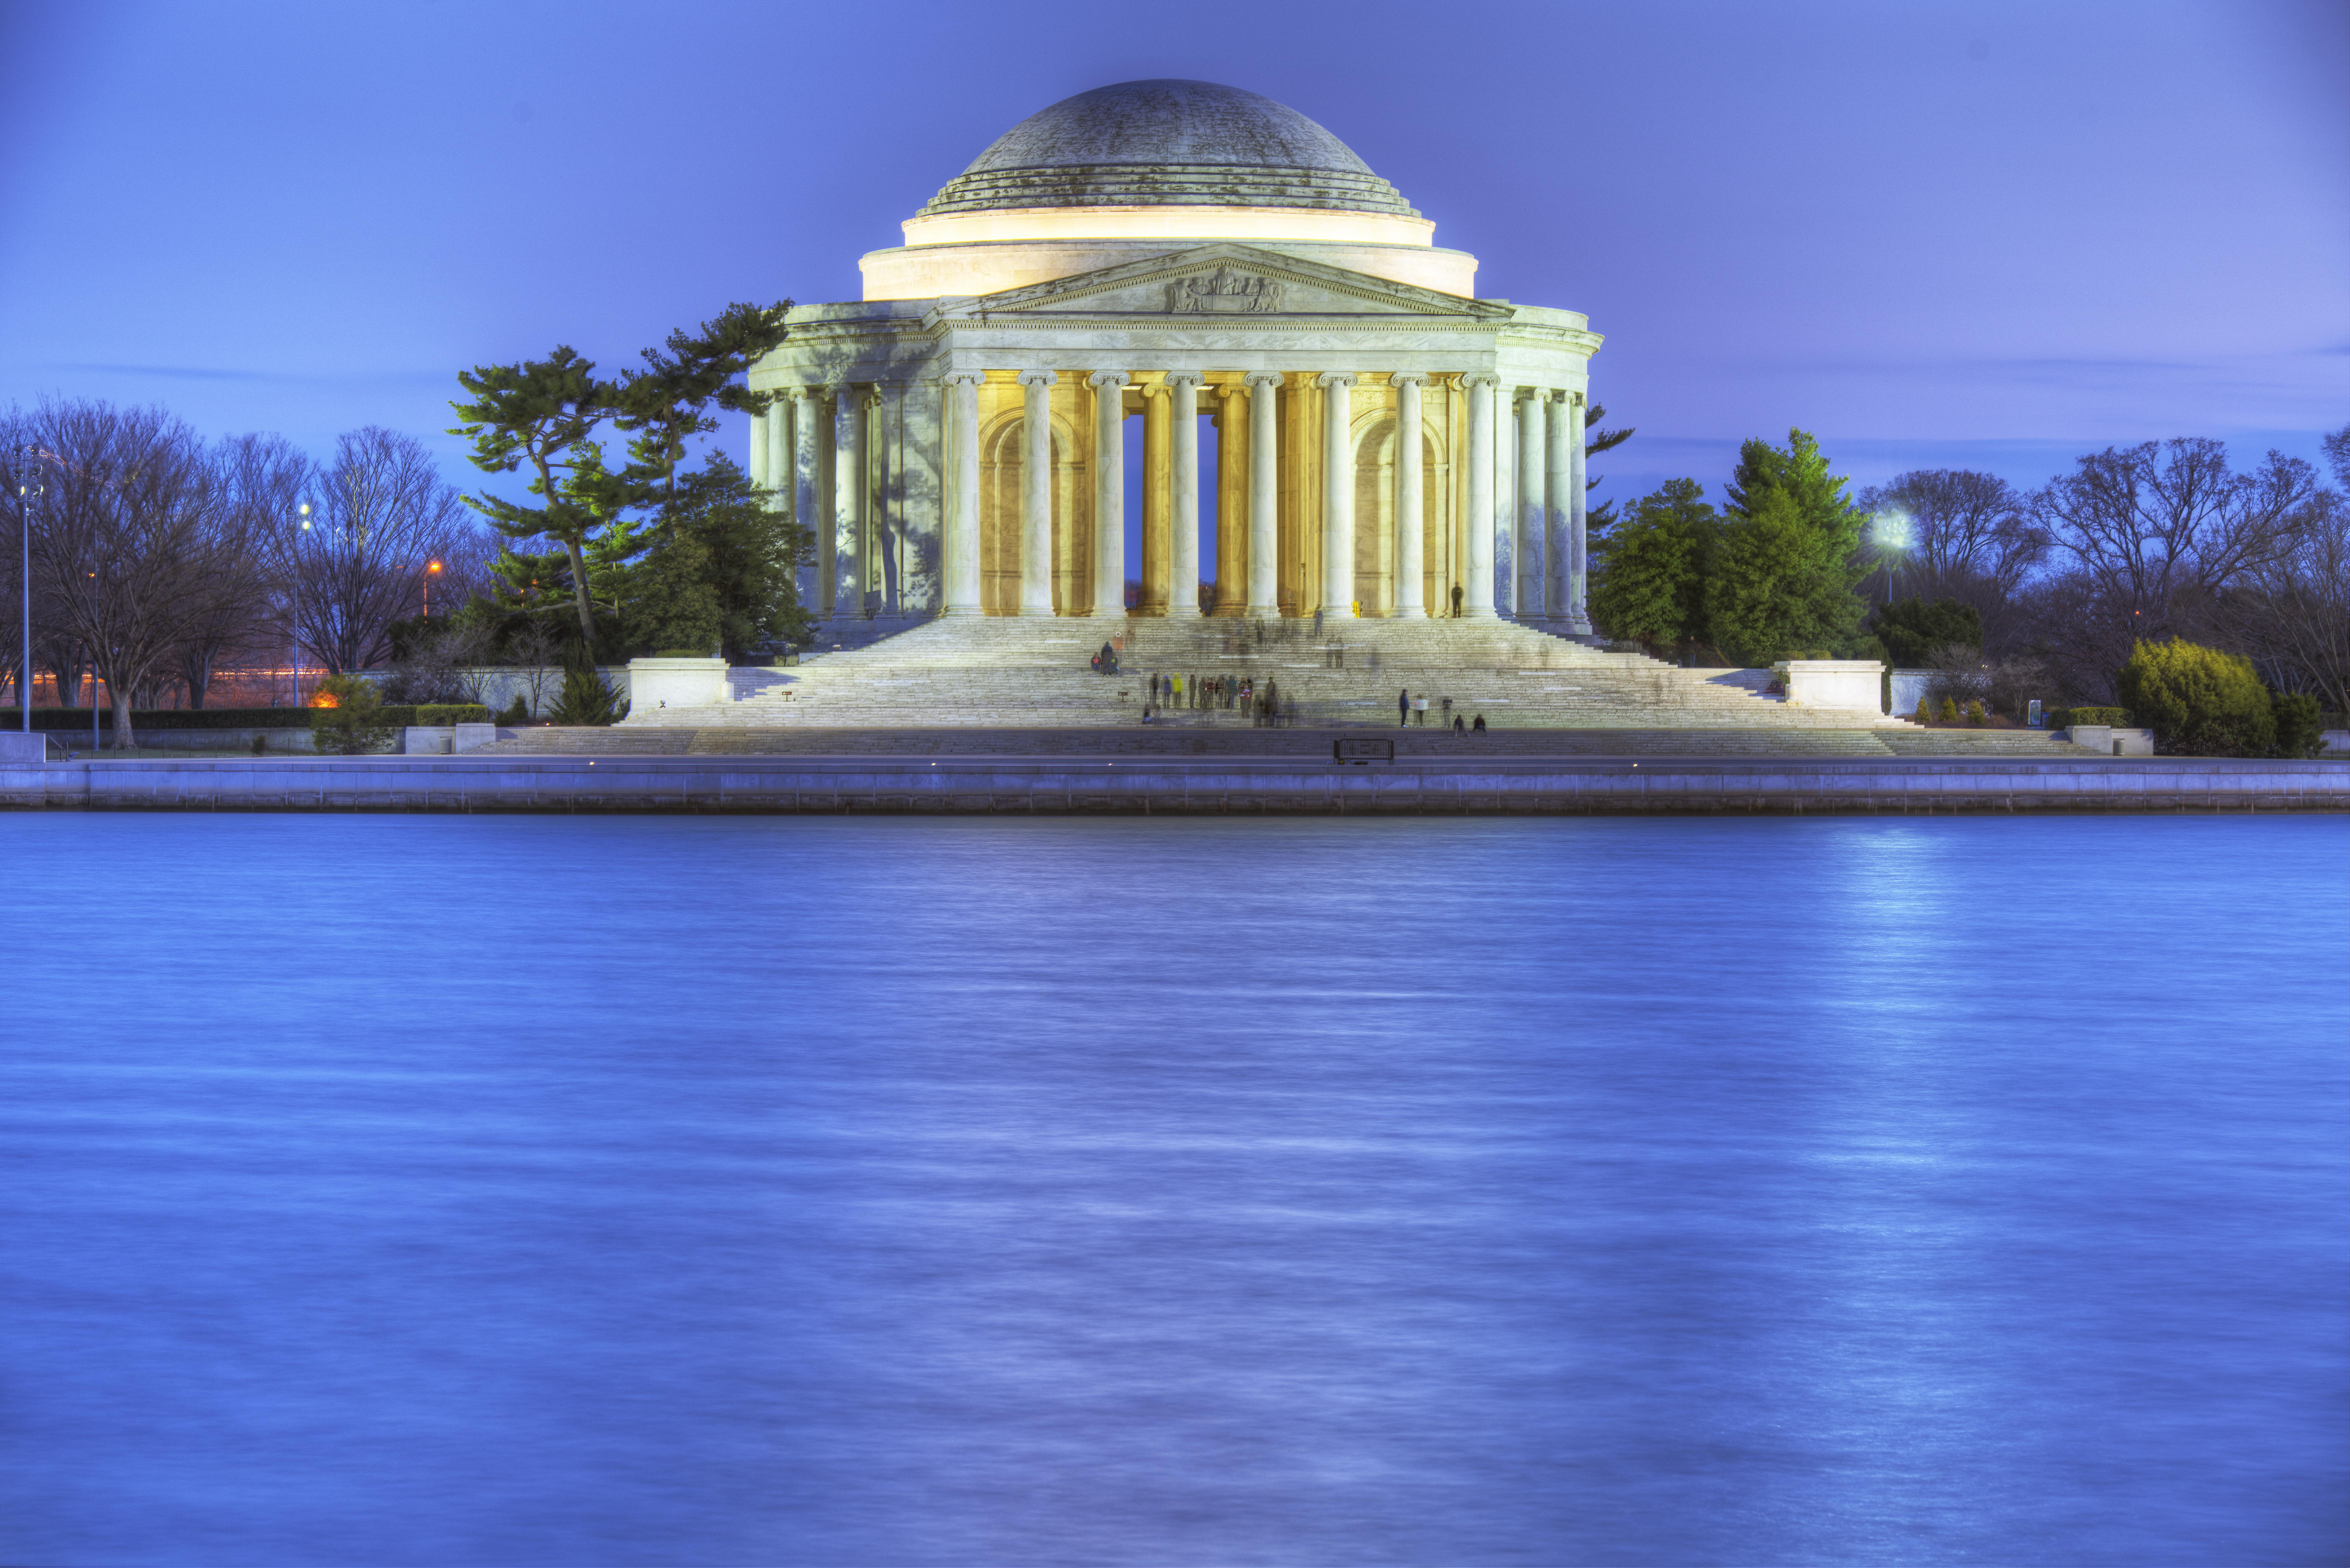 Jefferson Monument - Copyright Gerard McIntyre 2014. All rights reserved.